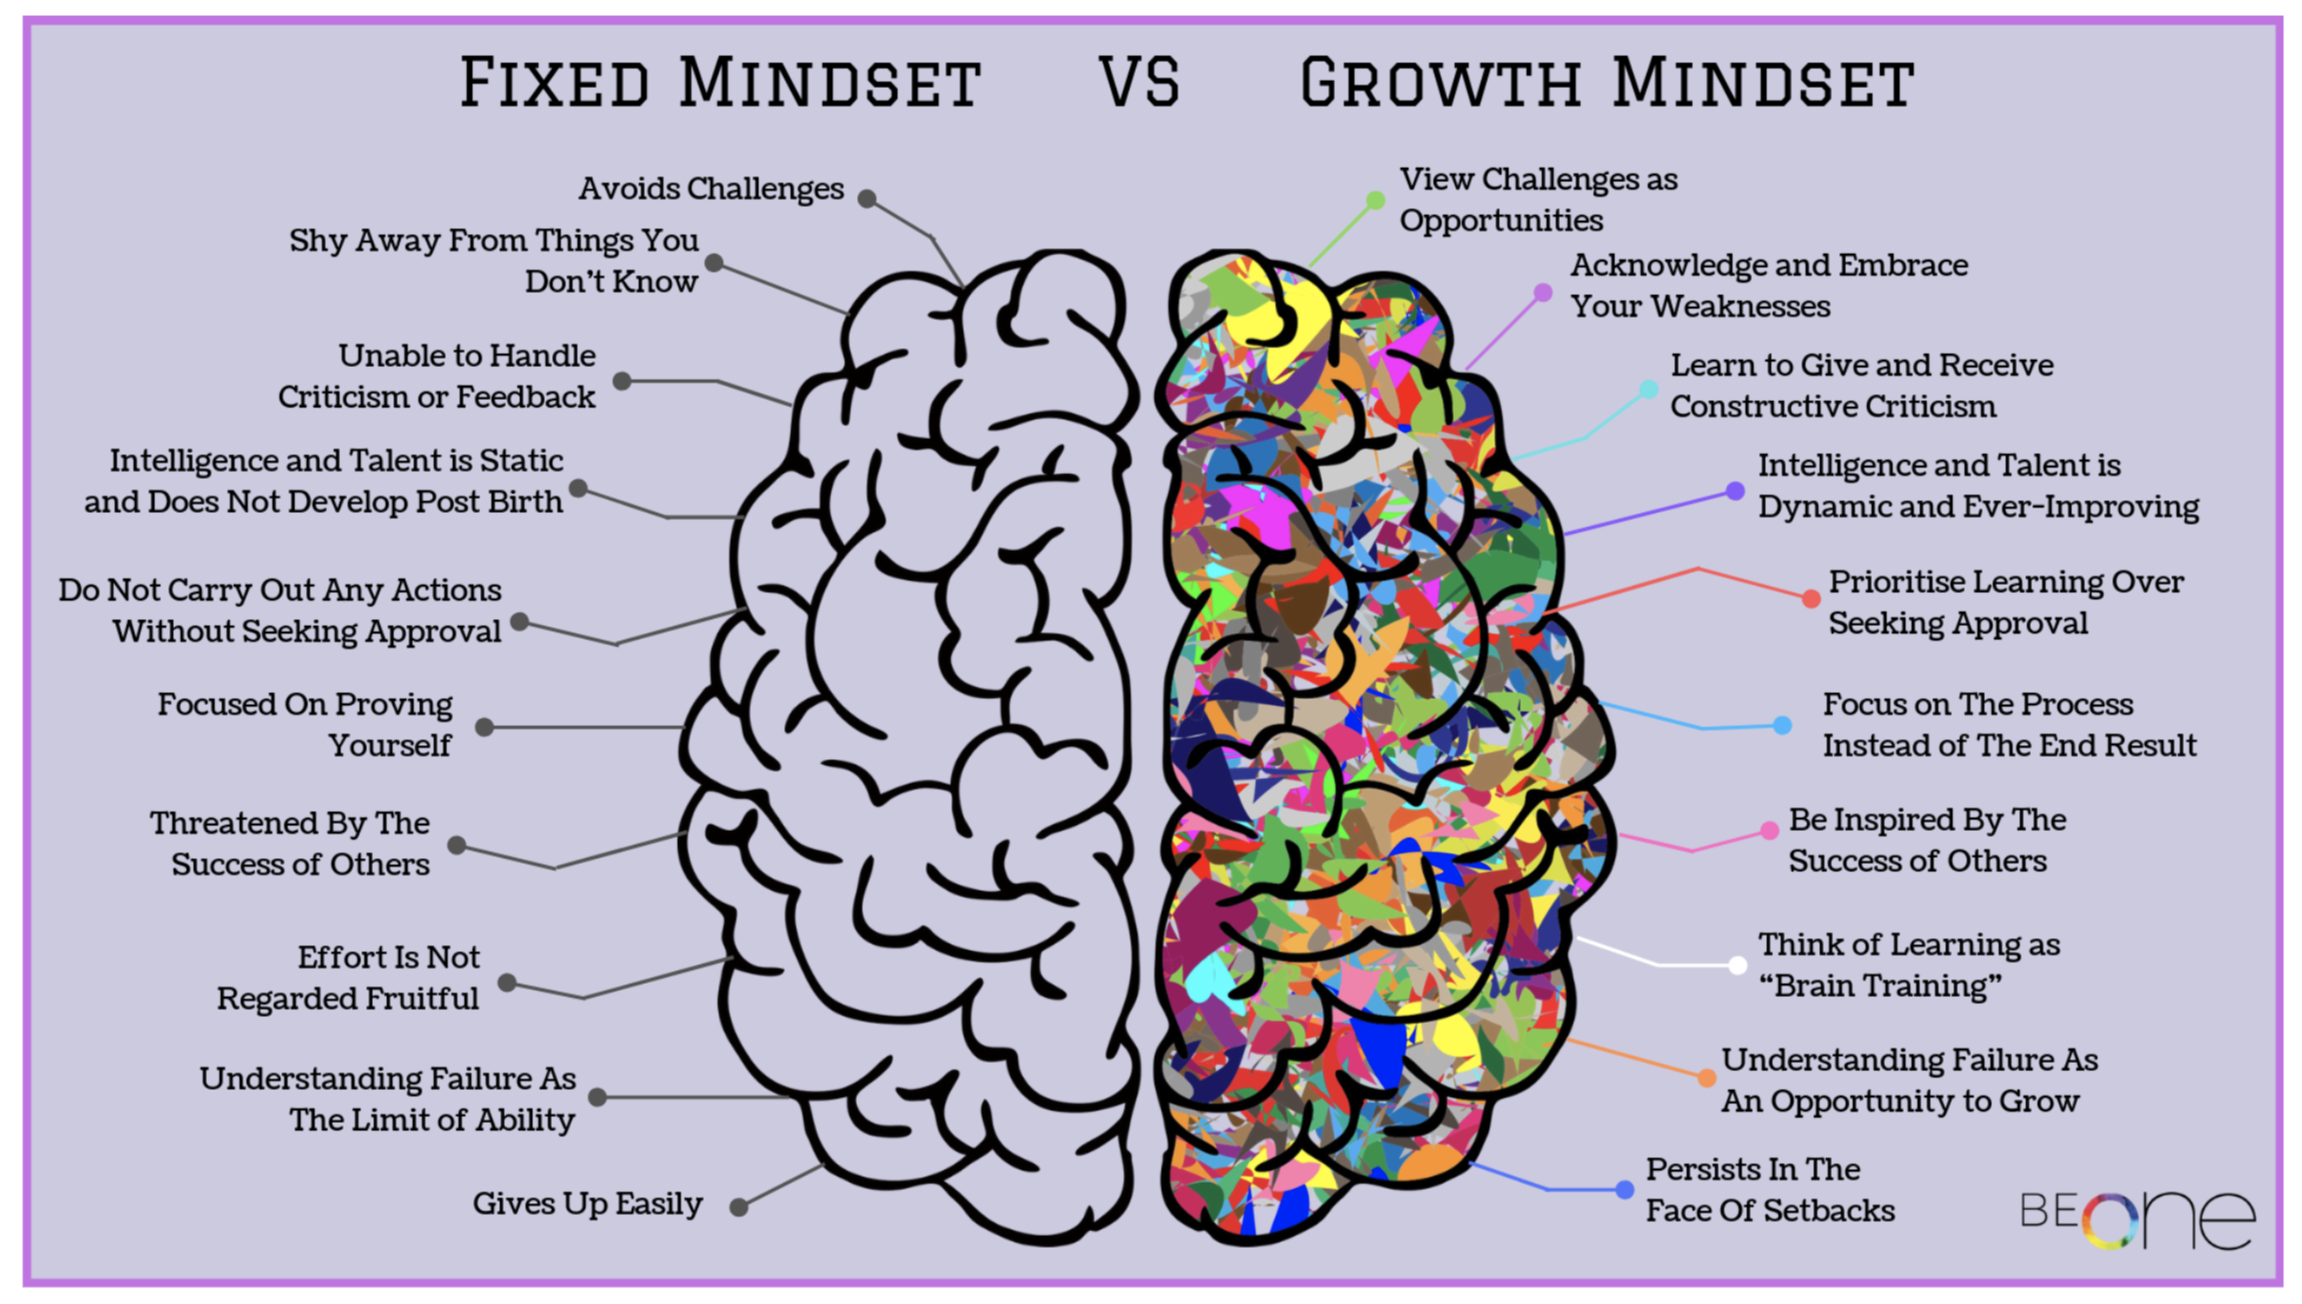 Chief Revenue Officer: growth mindset